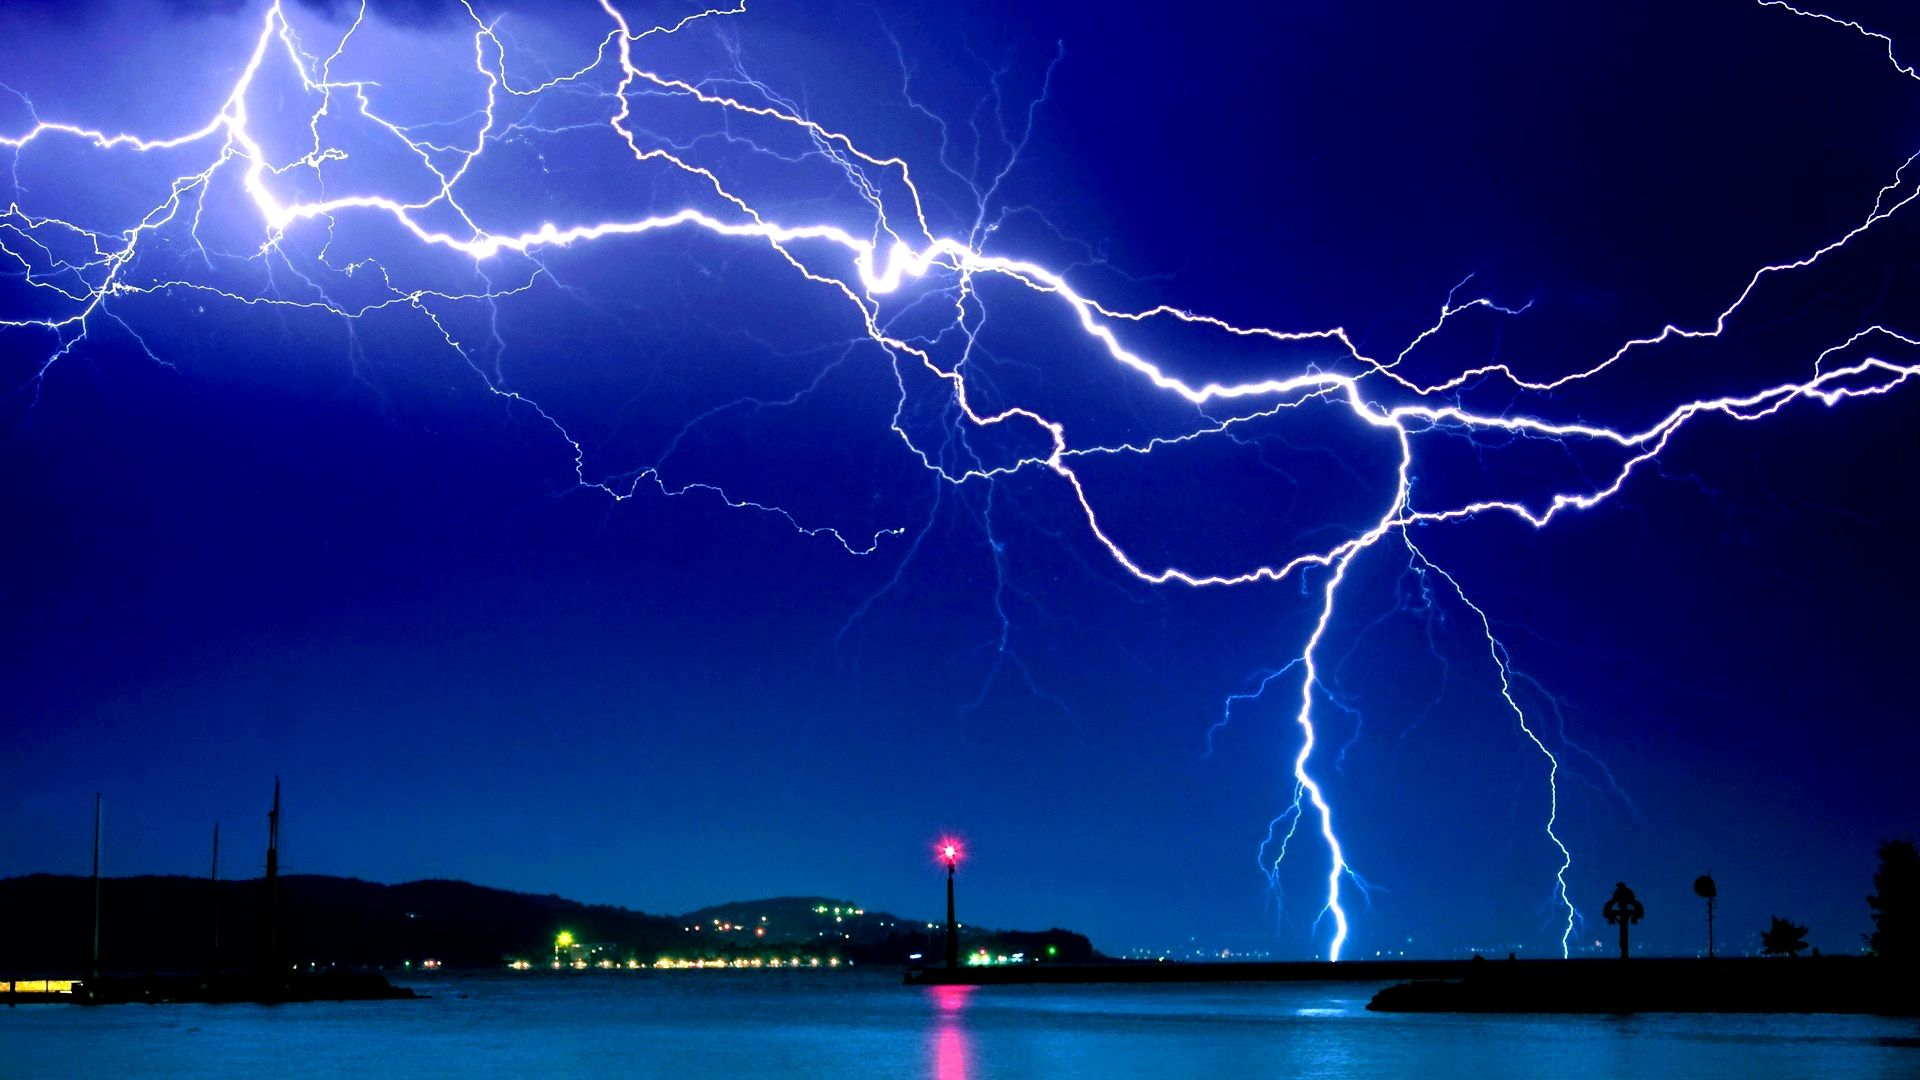 Hd Lightning Wallpapers Top Free Hd Lightning Backgrounds Wallpaperaccess